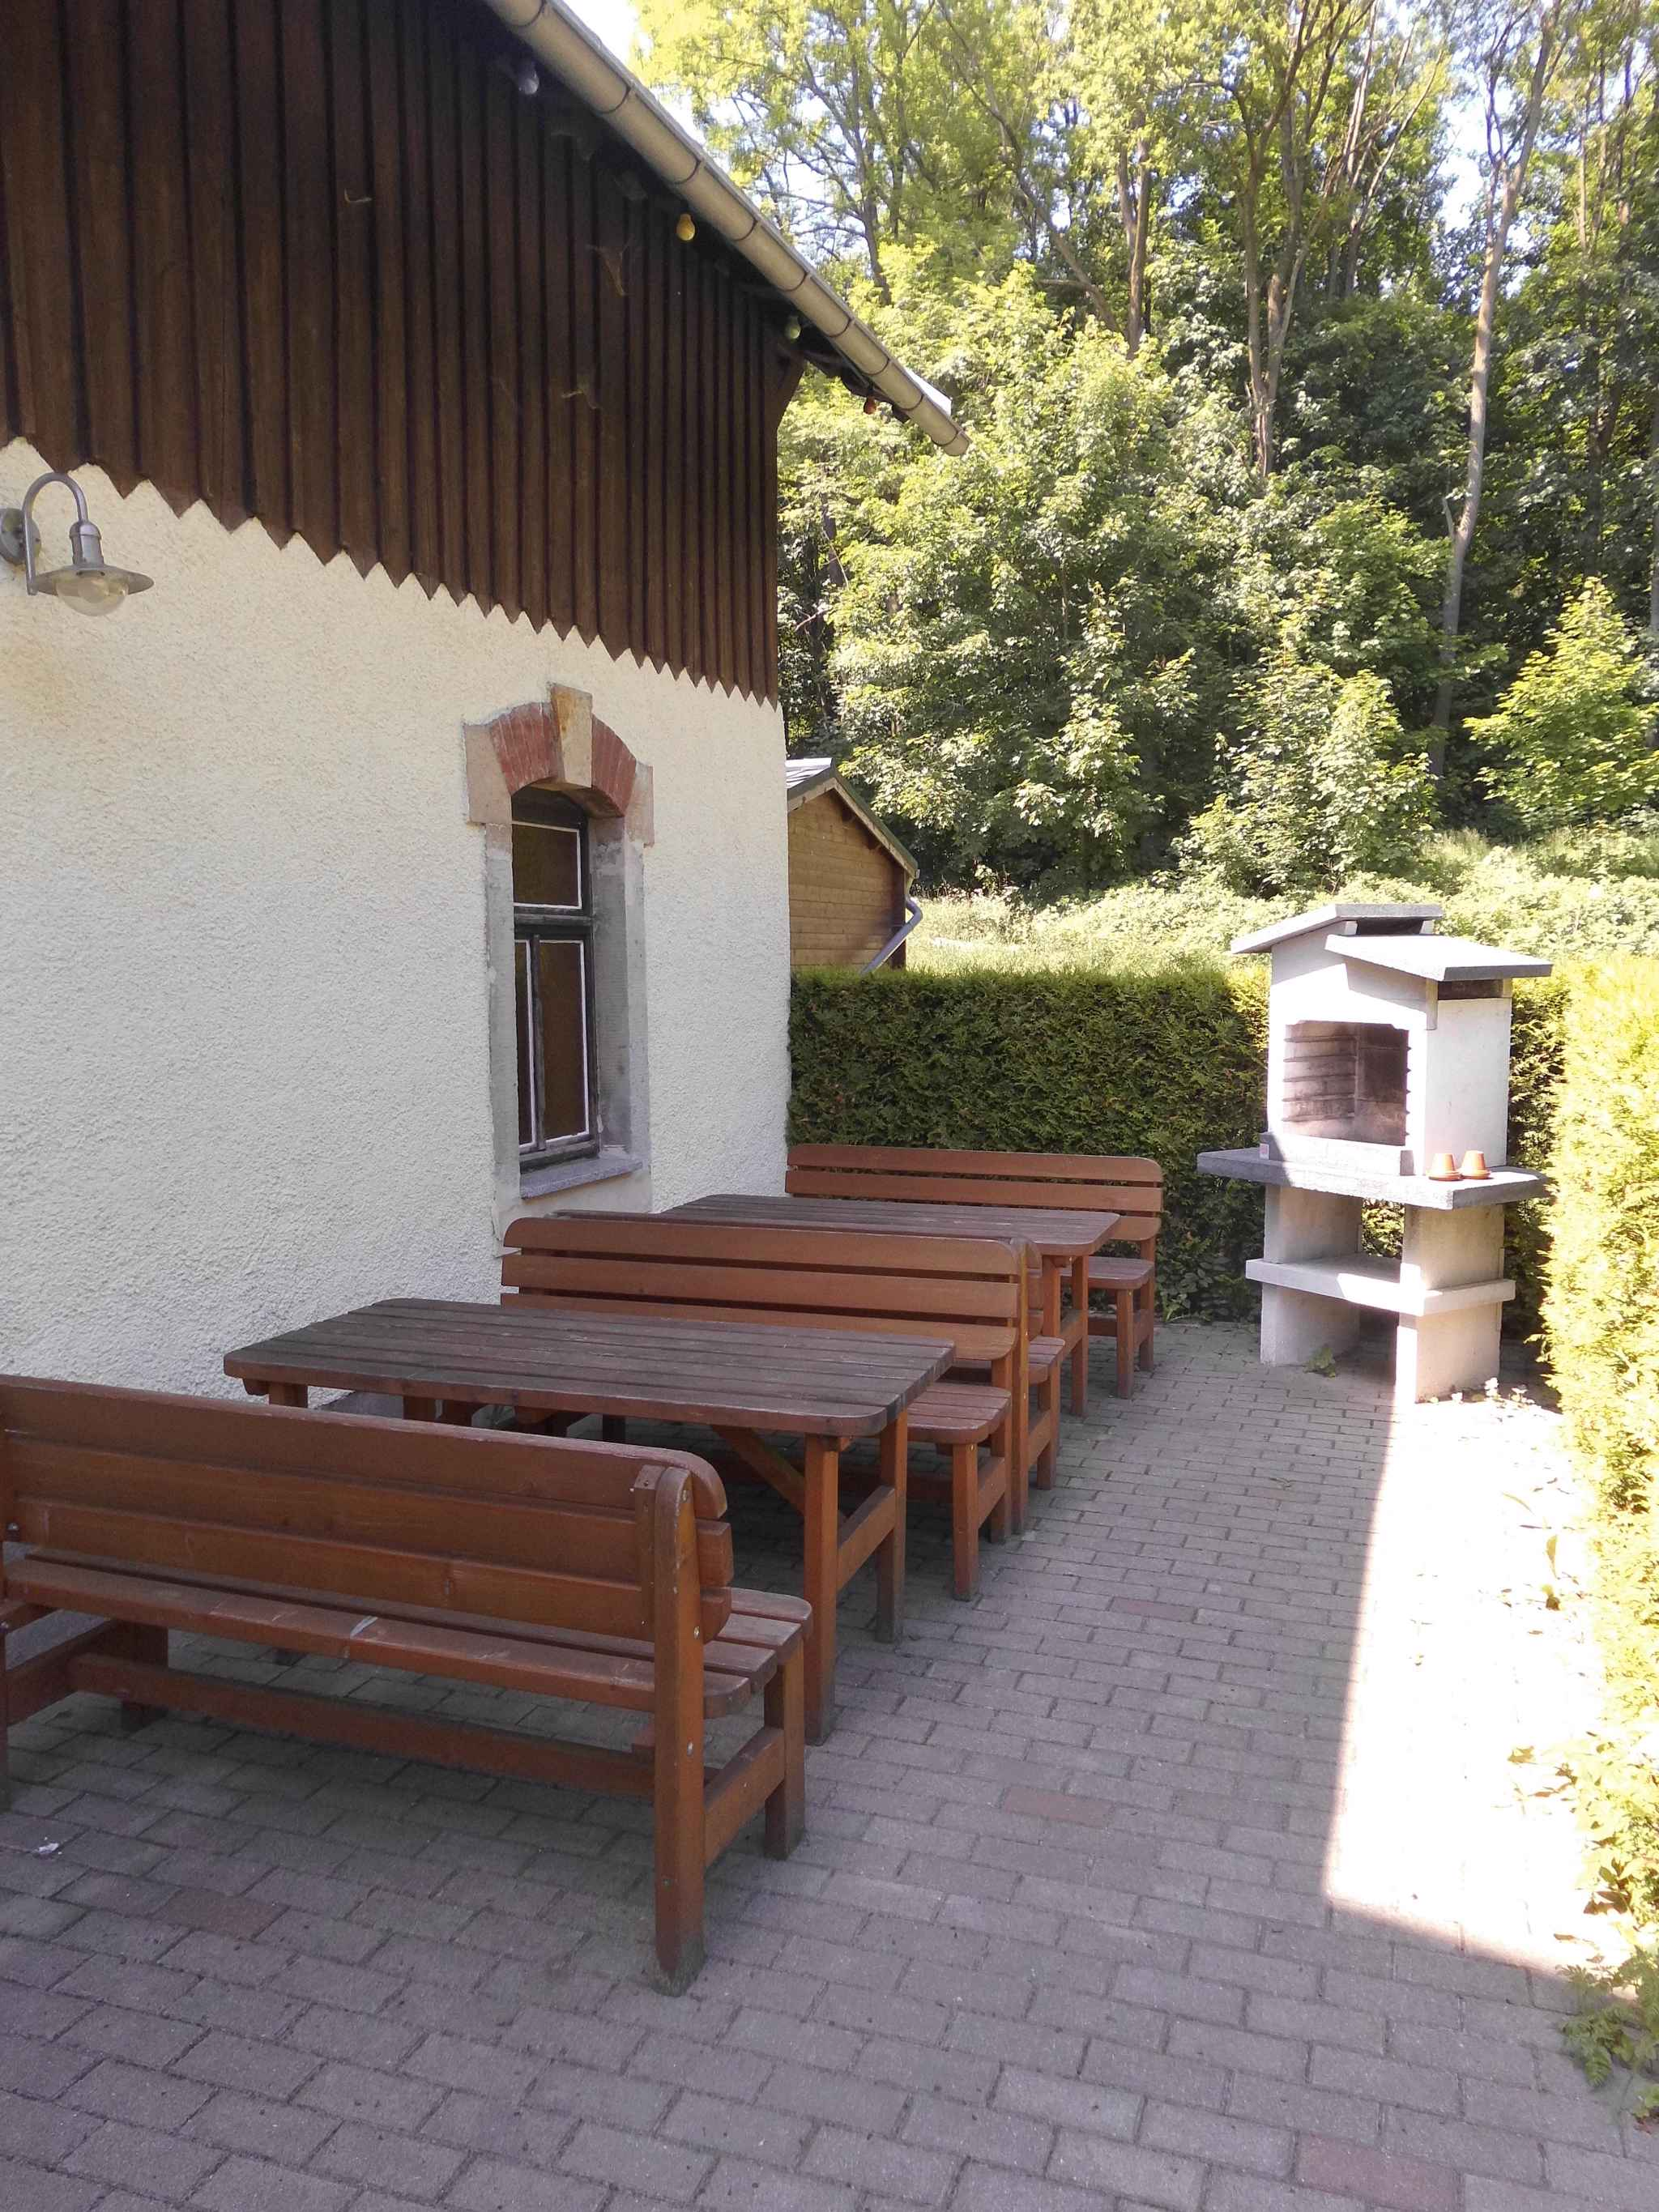 Holiday apartment in ruhiger Waldrandlage (322516), Sayda, The Ore Mountains, Saxony, Germany, picture 7